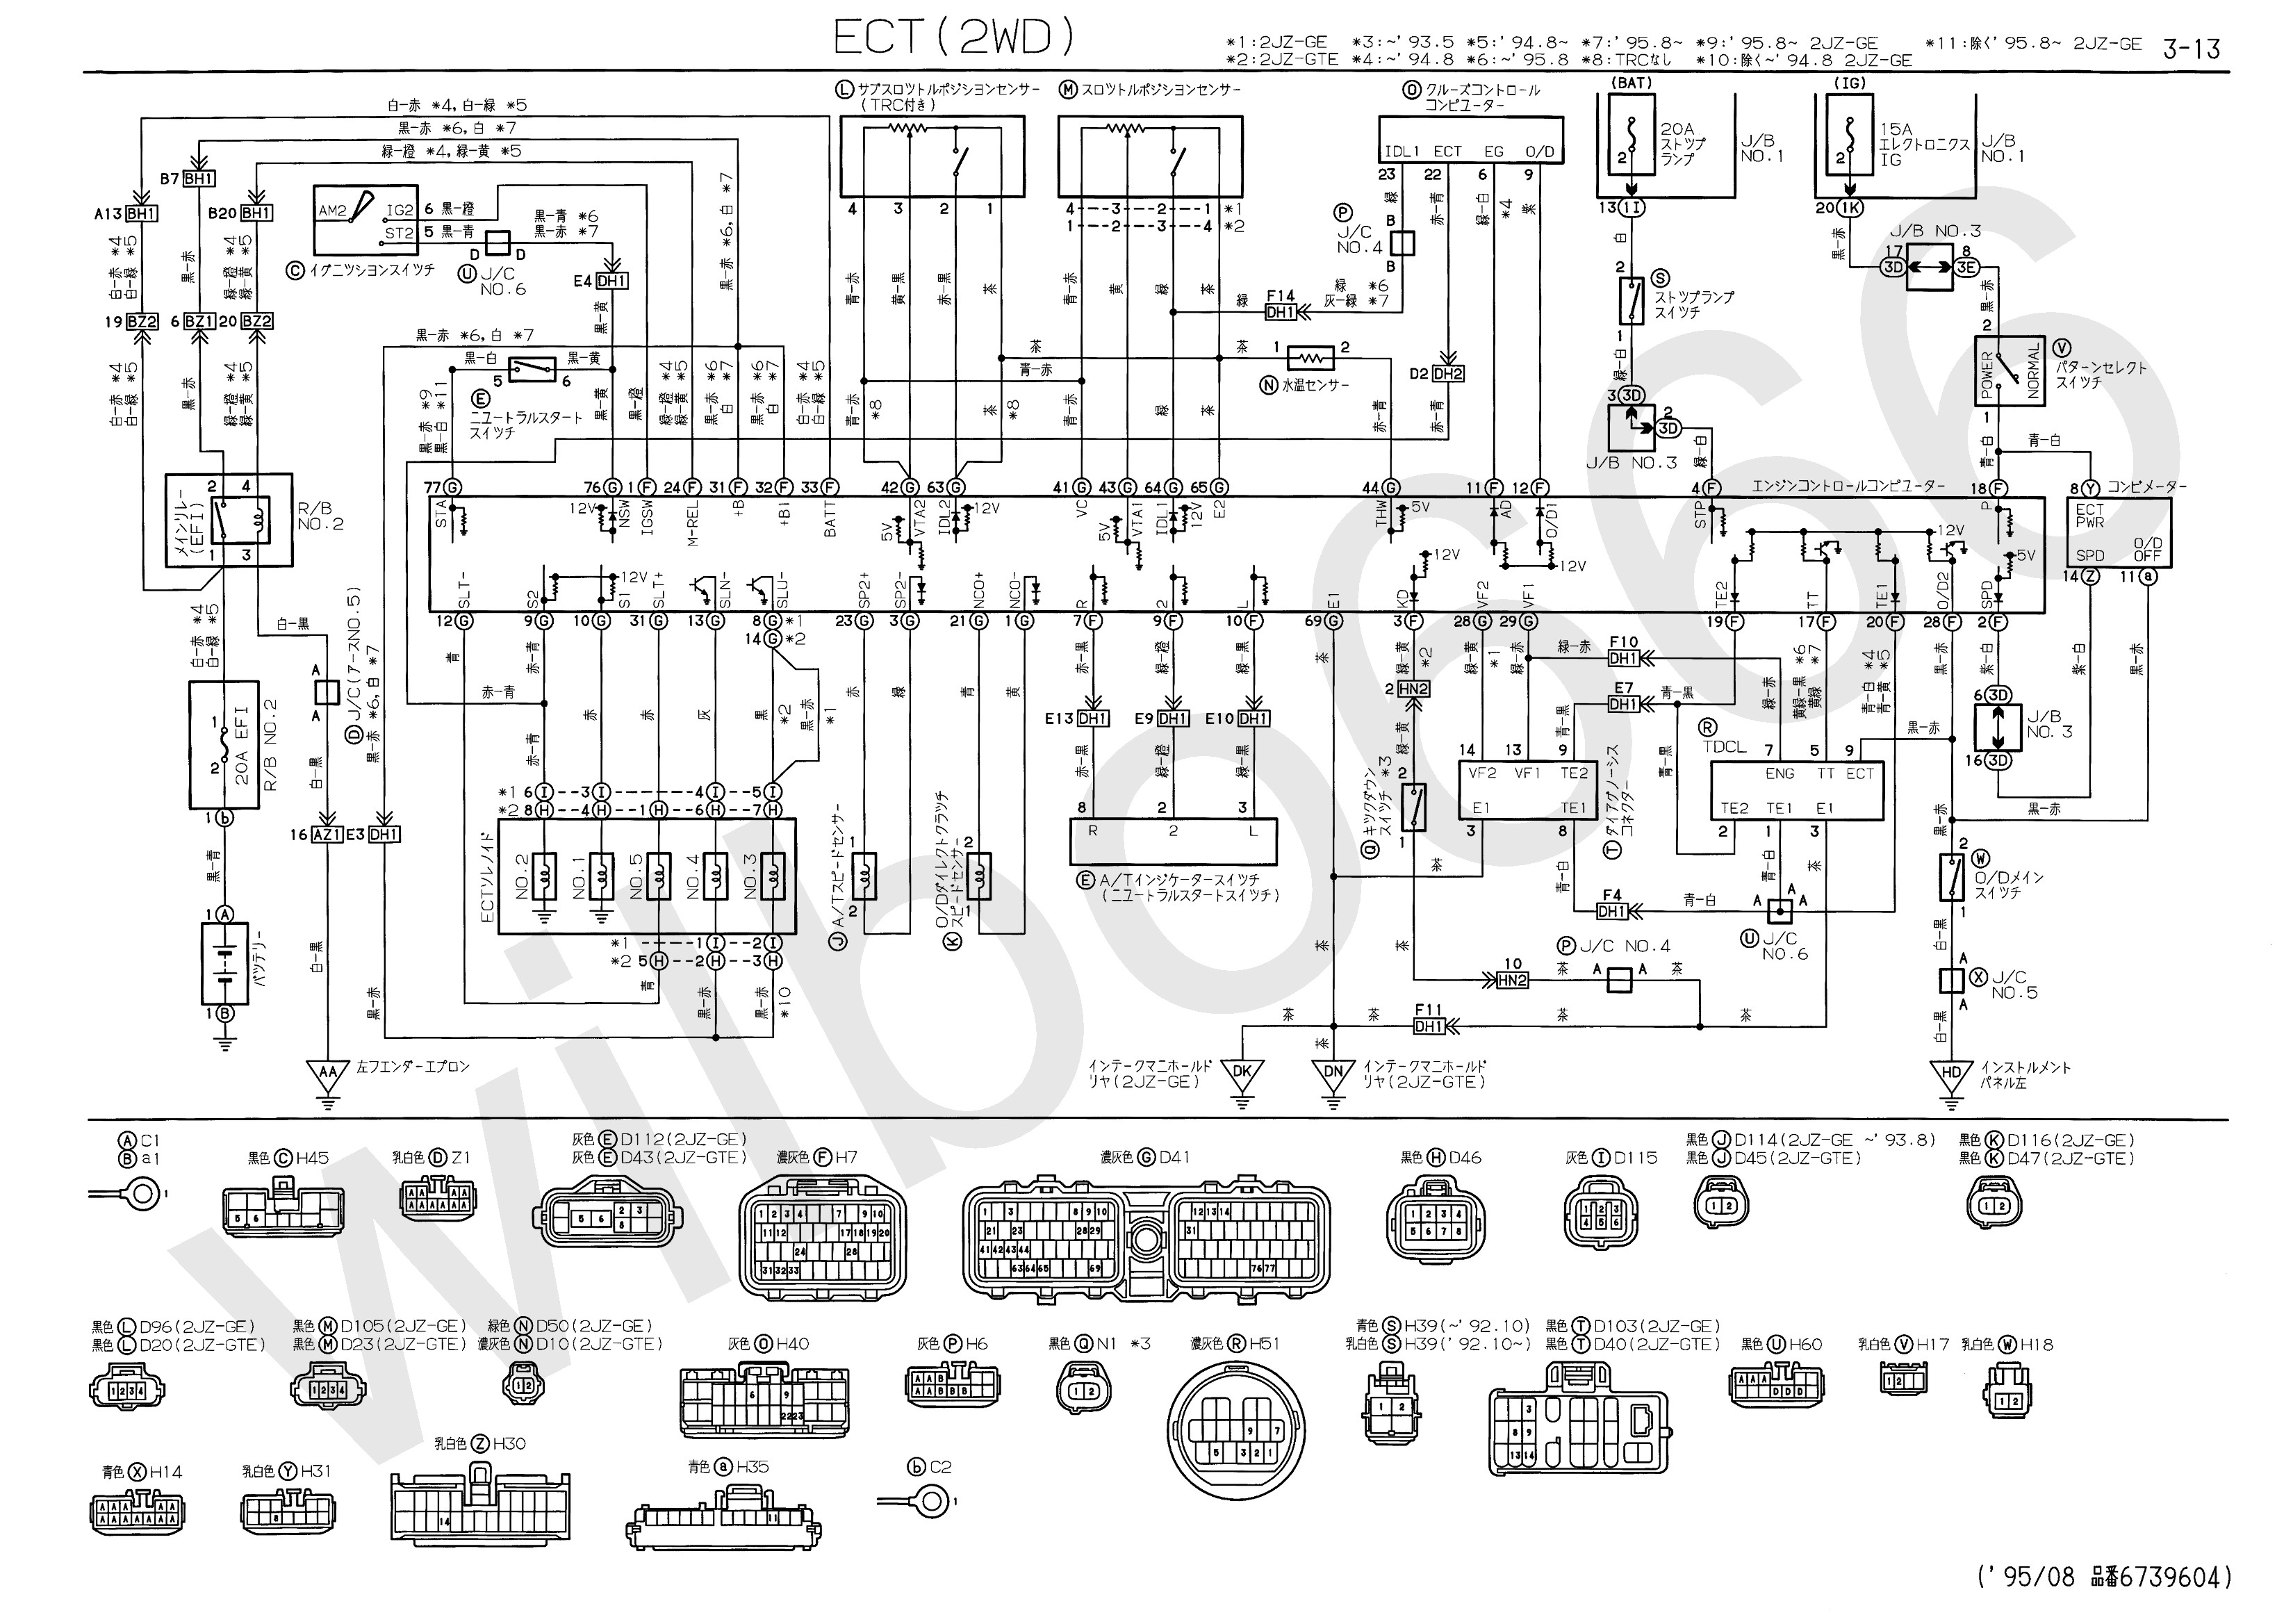 Wiring Diagrams For 2001 Infiniti I30 - Wiring Diagram Verified on